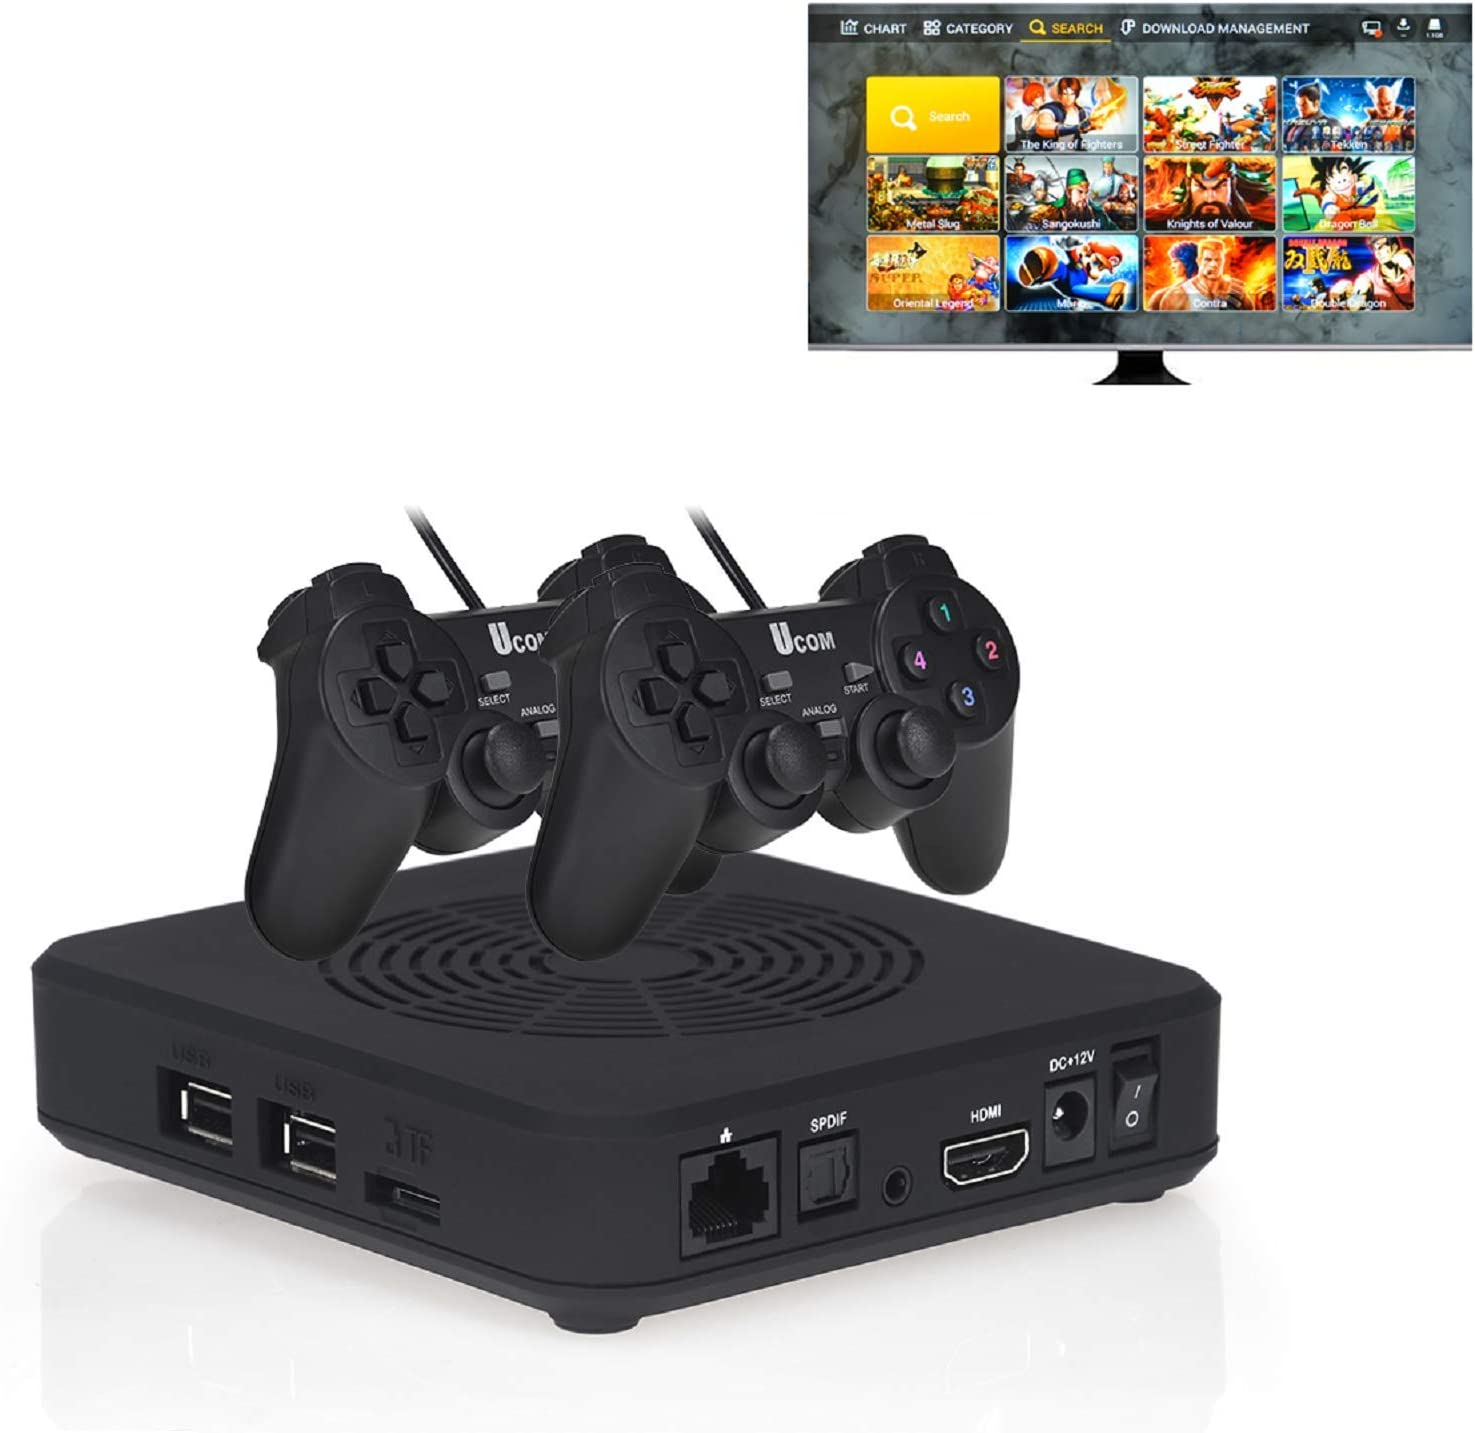 TAPDRA 3D Pandora SAGA WiFi TV Game Box 3000 in 1 Multi Games Arcade  Console with 2 USB Gamepad, Support 10000+ Games Download